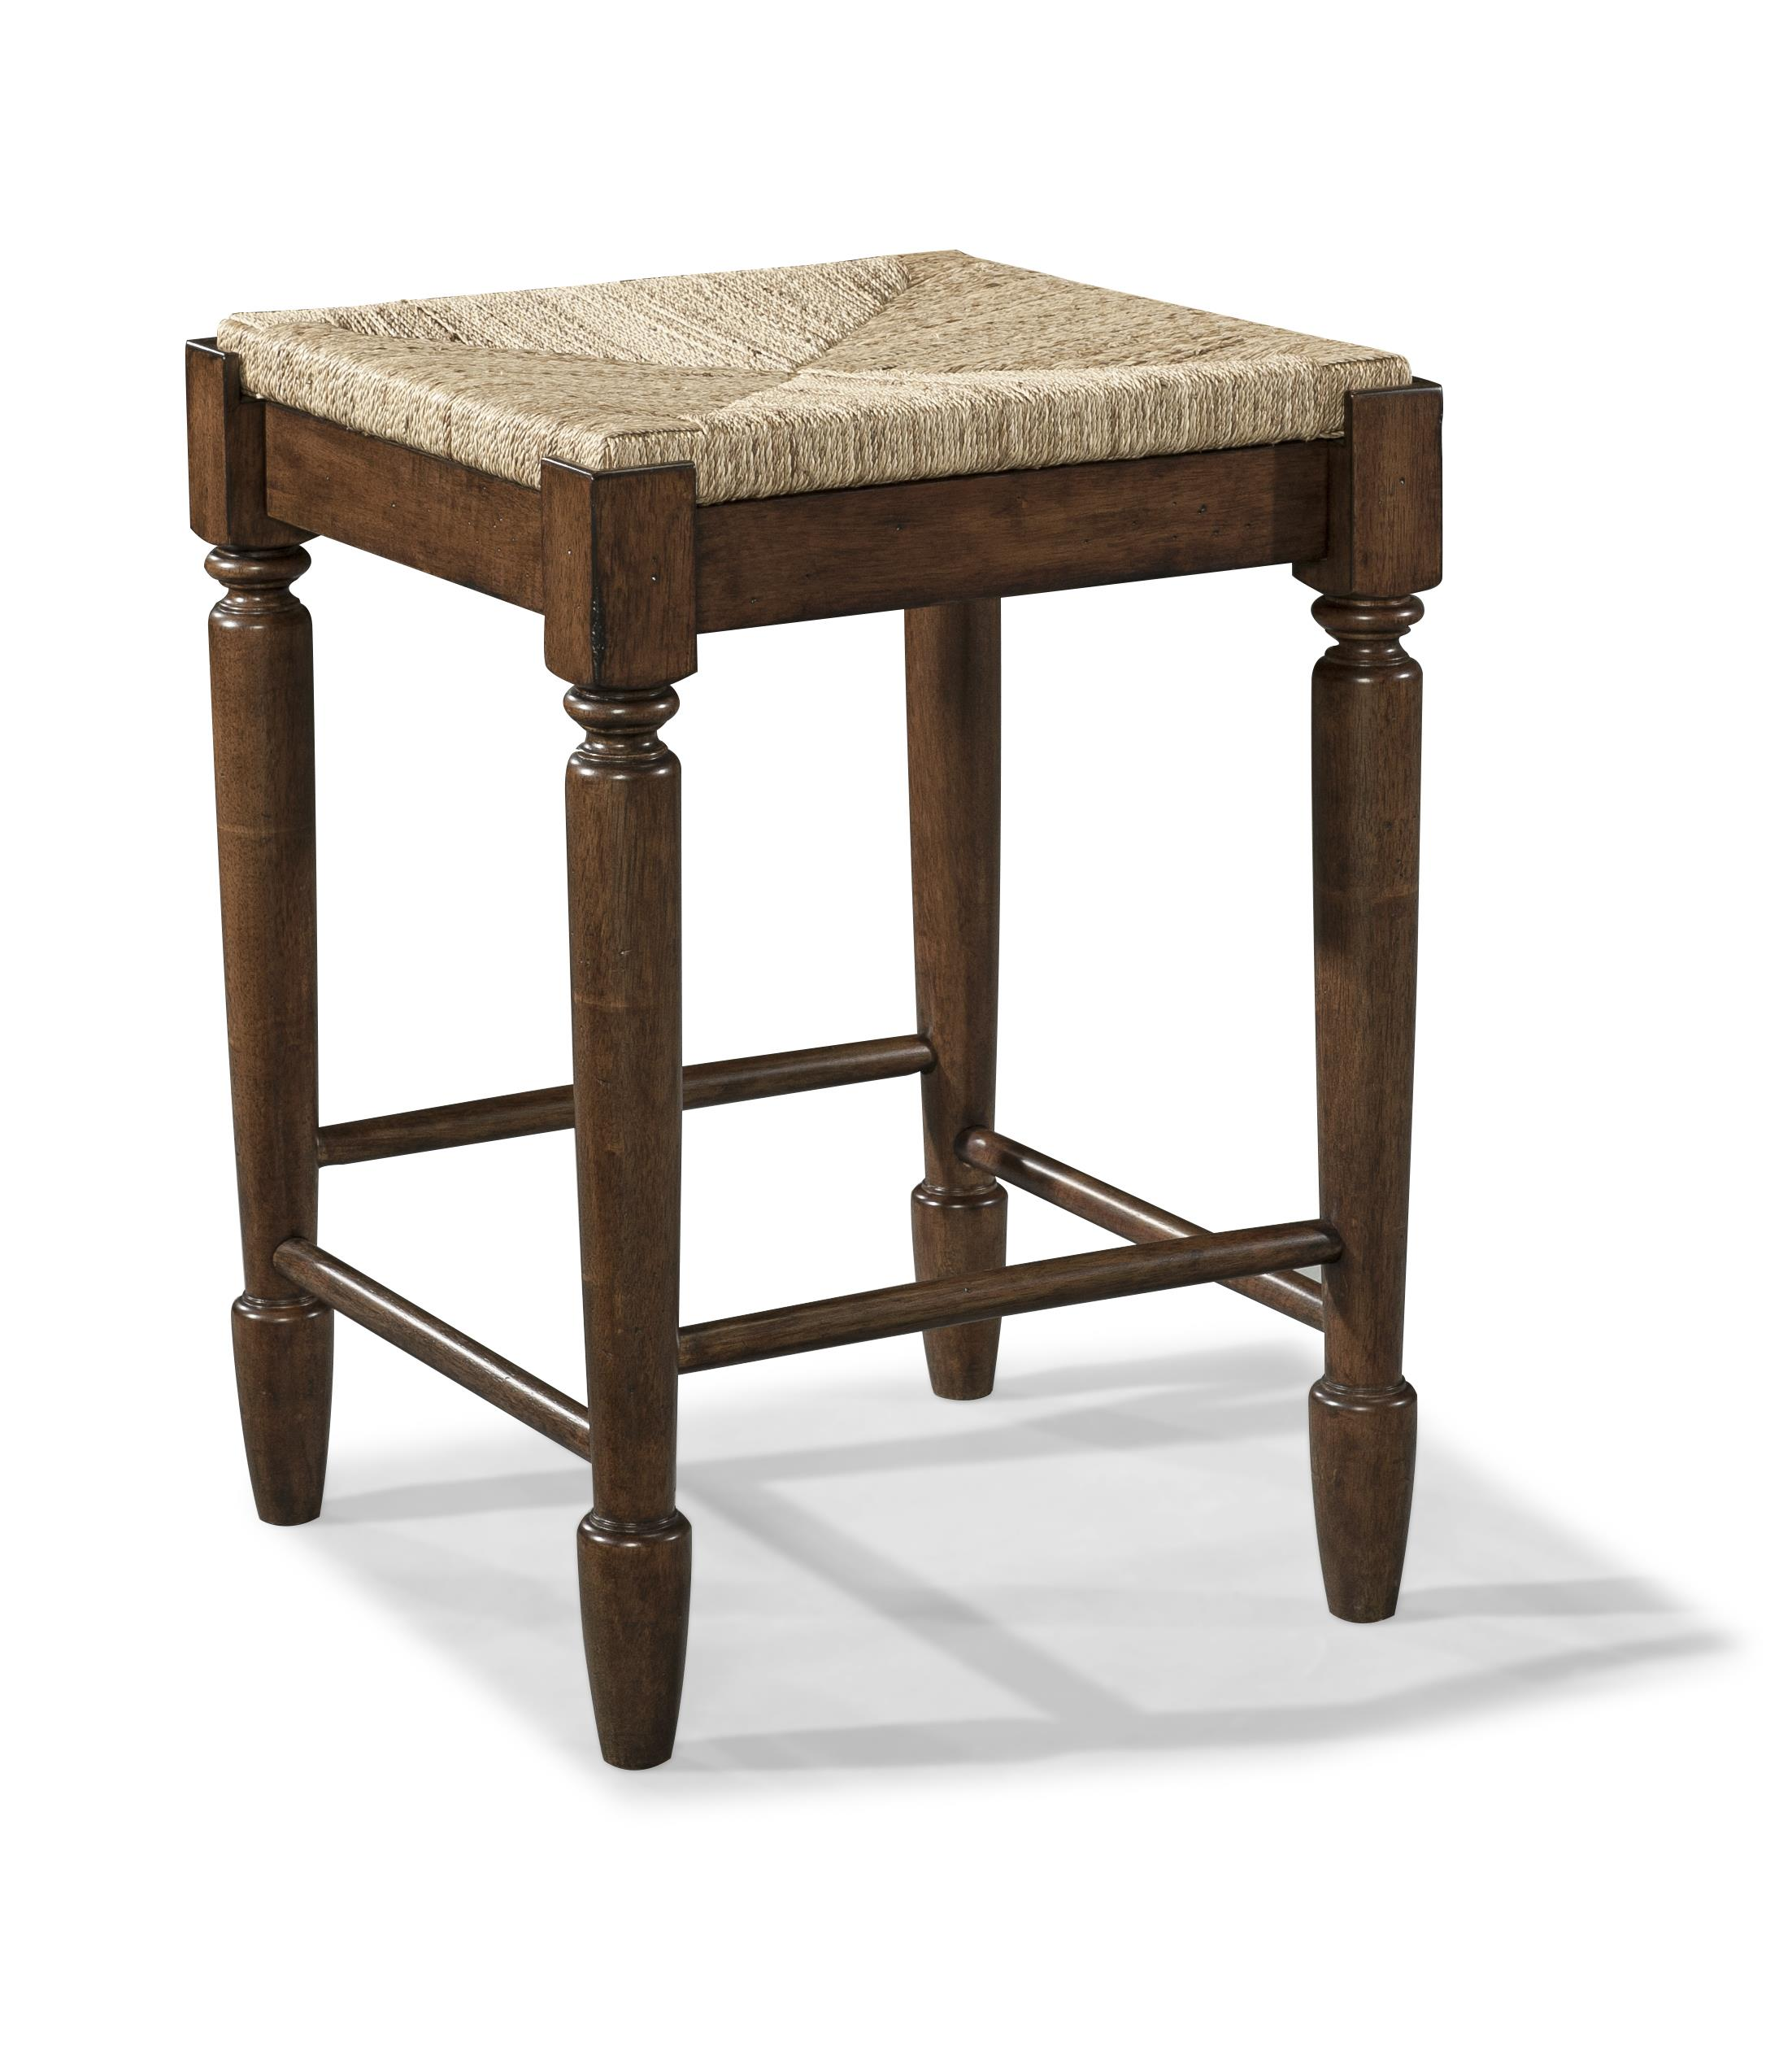 Easton Collection Blue Ridge Cherry Desk Stool - Item Number: 426-920 STOOL